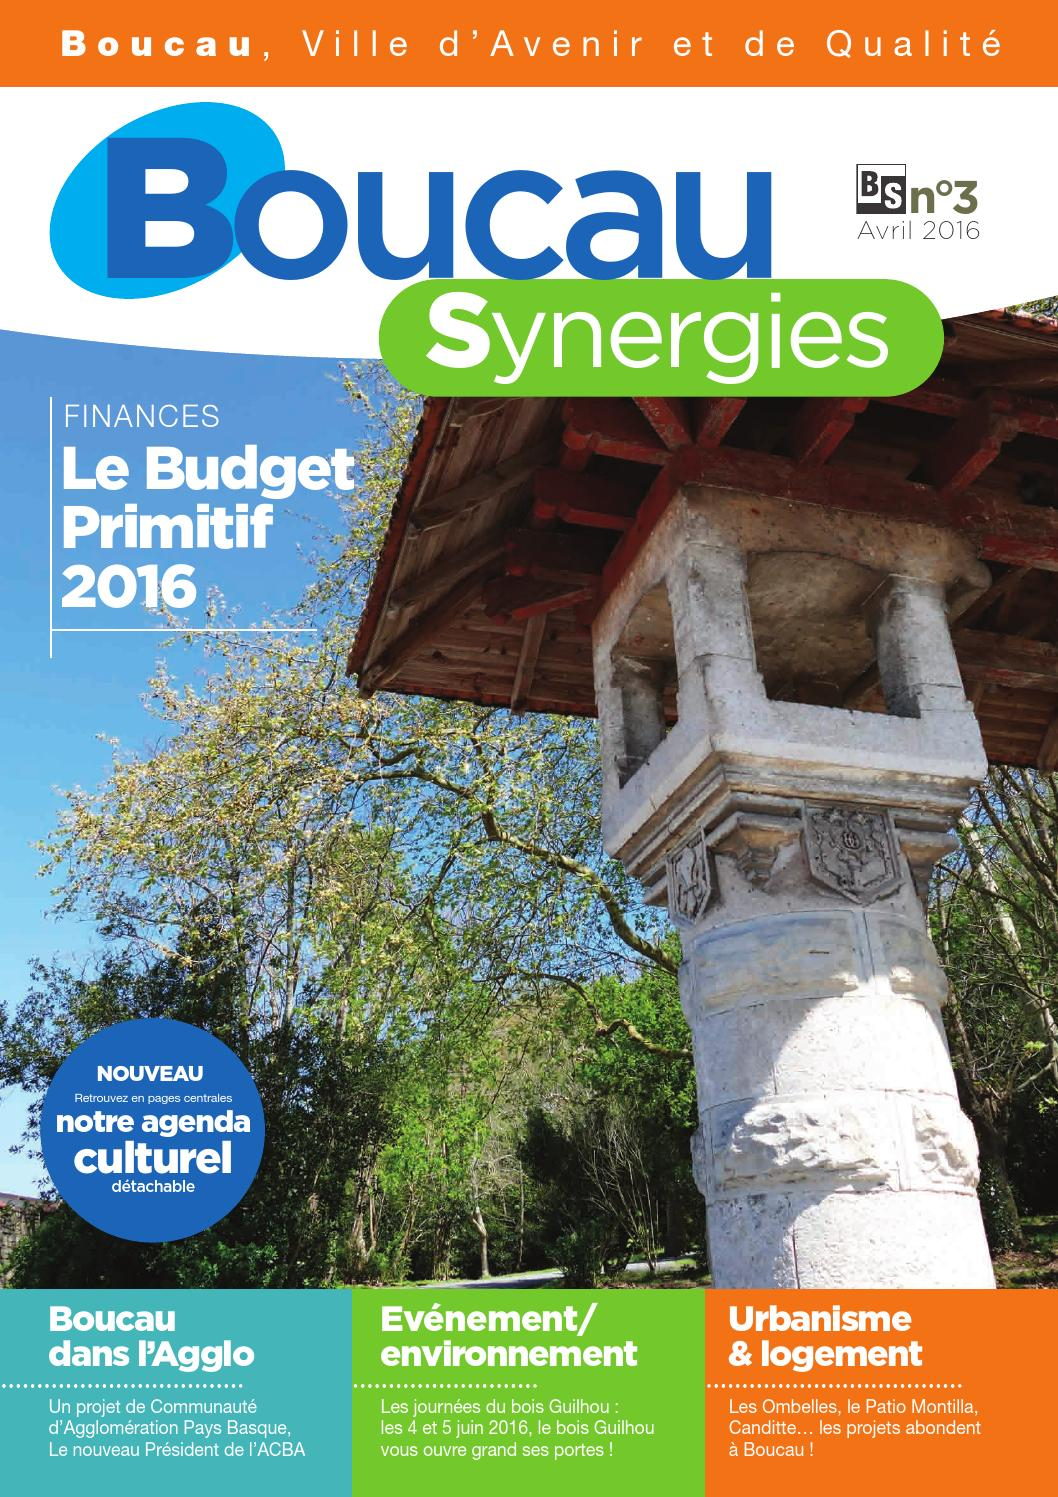 Boucau Synergies n°3 - Avril 2016 - Page 10